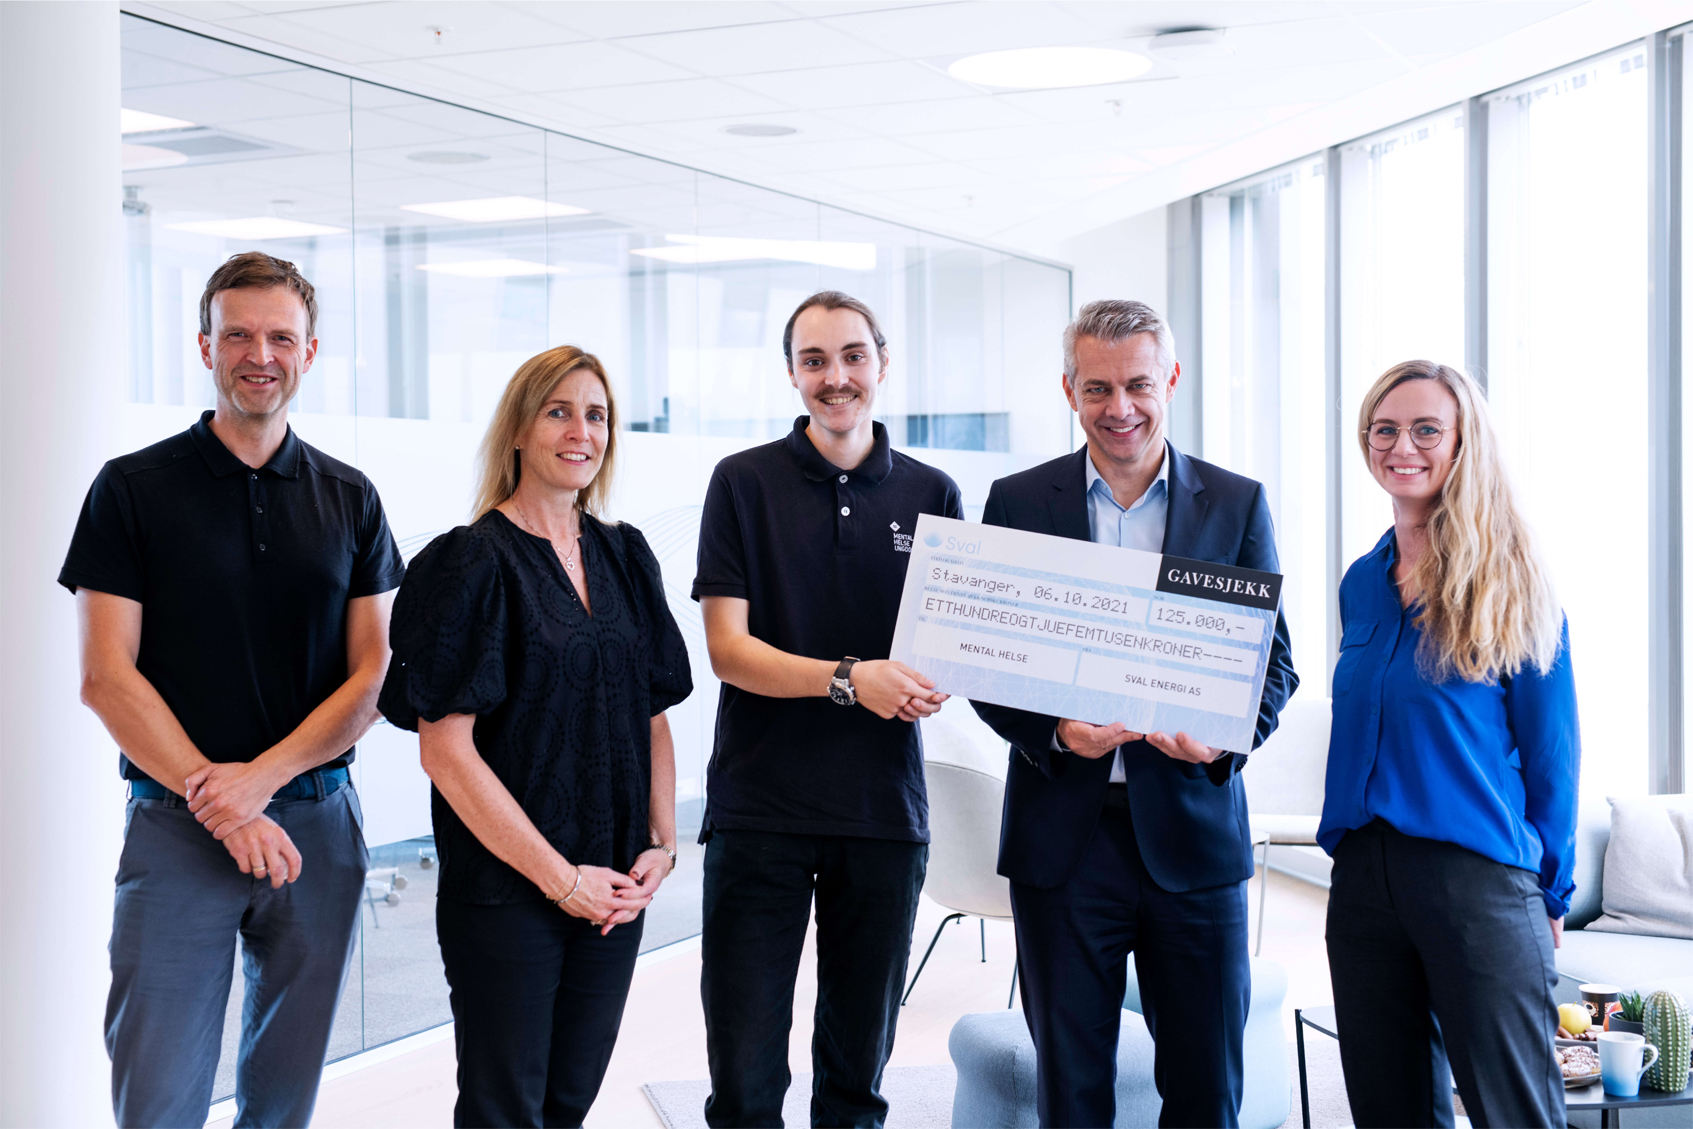 Sval Energi supports Youth Mental Health